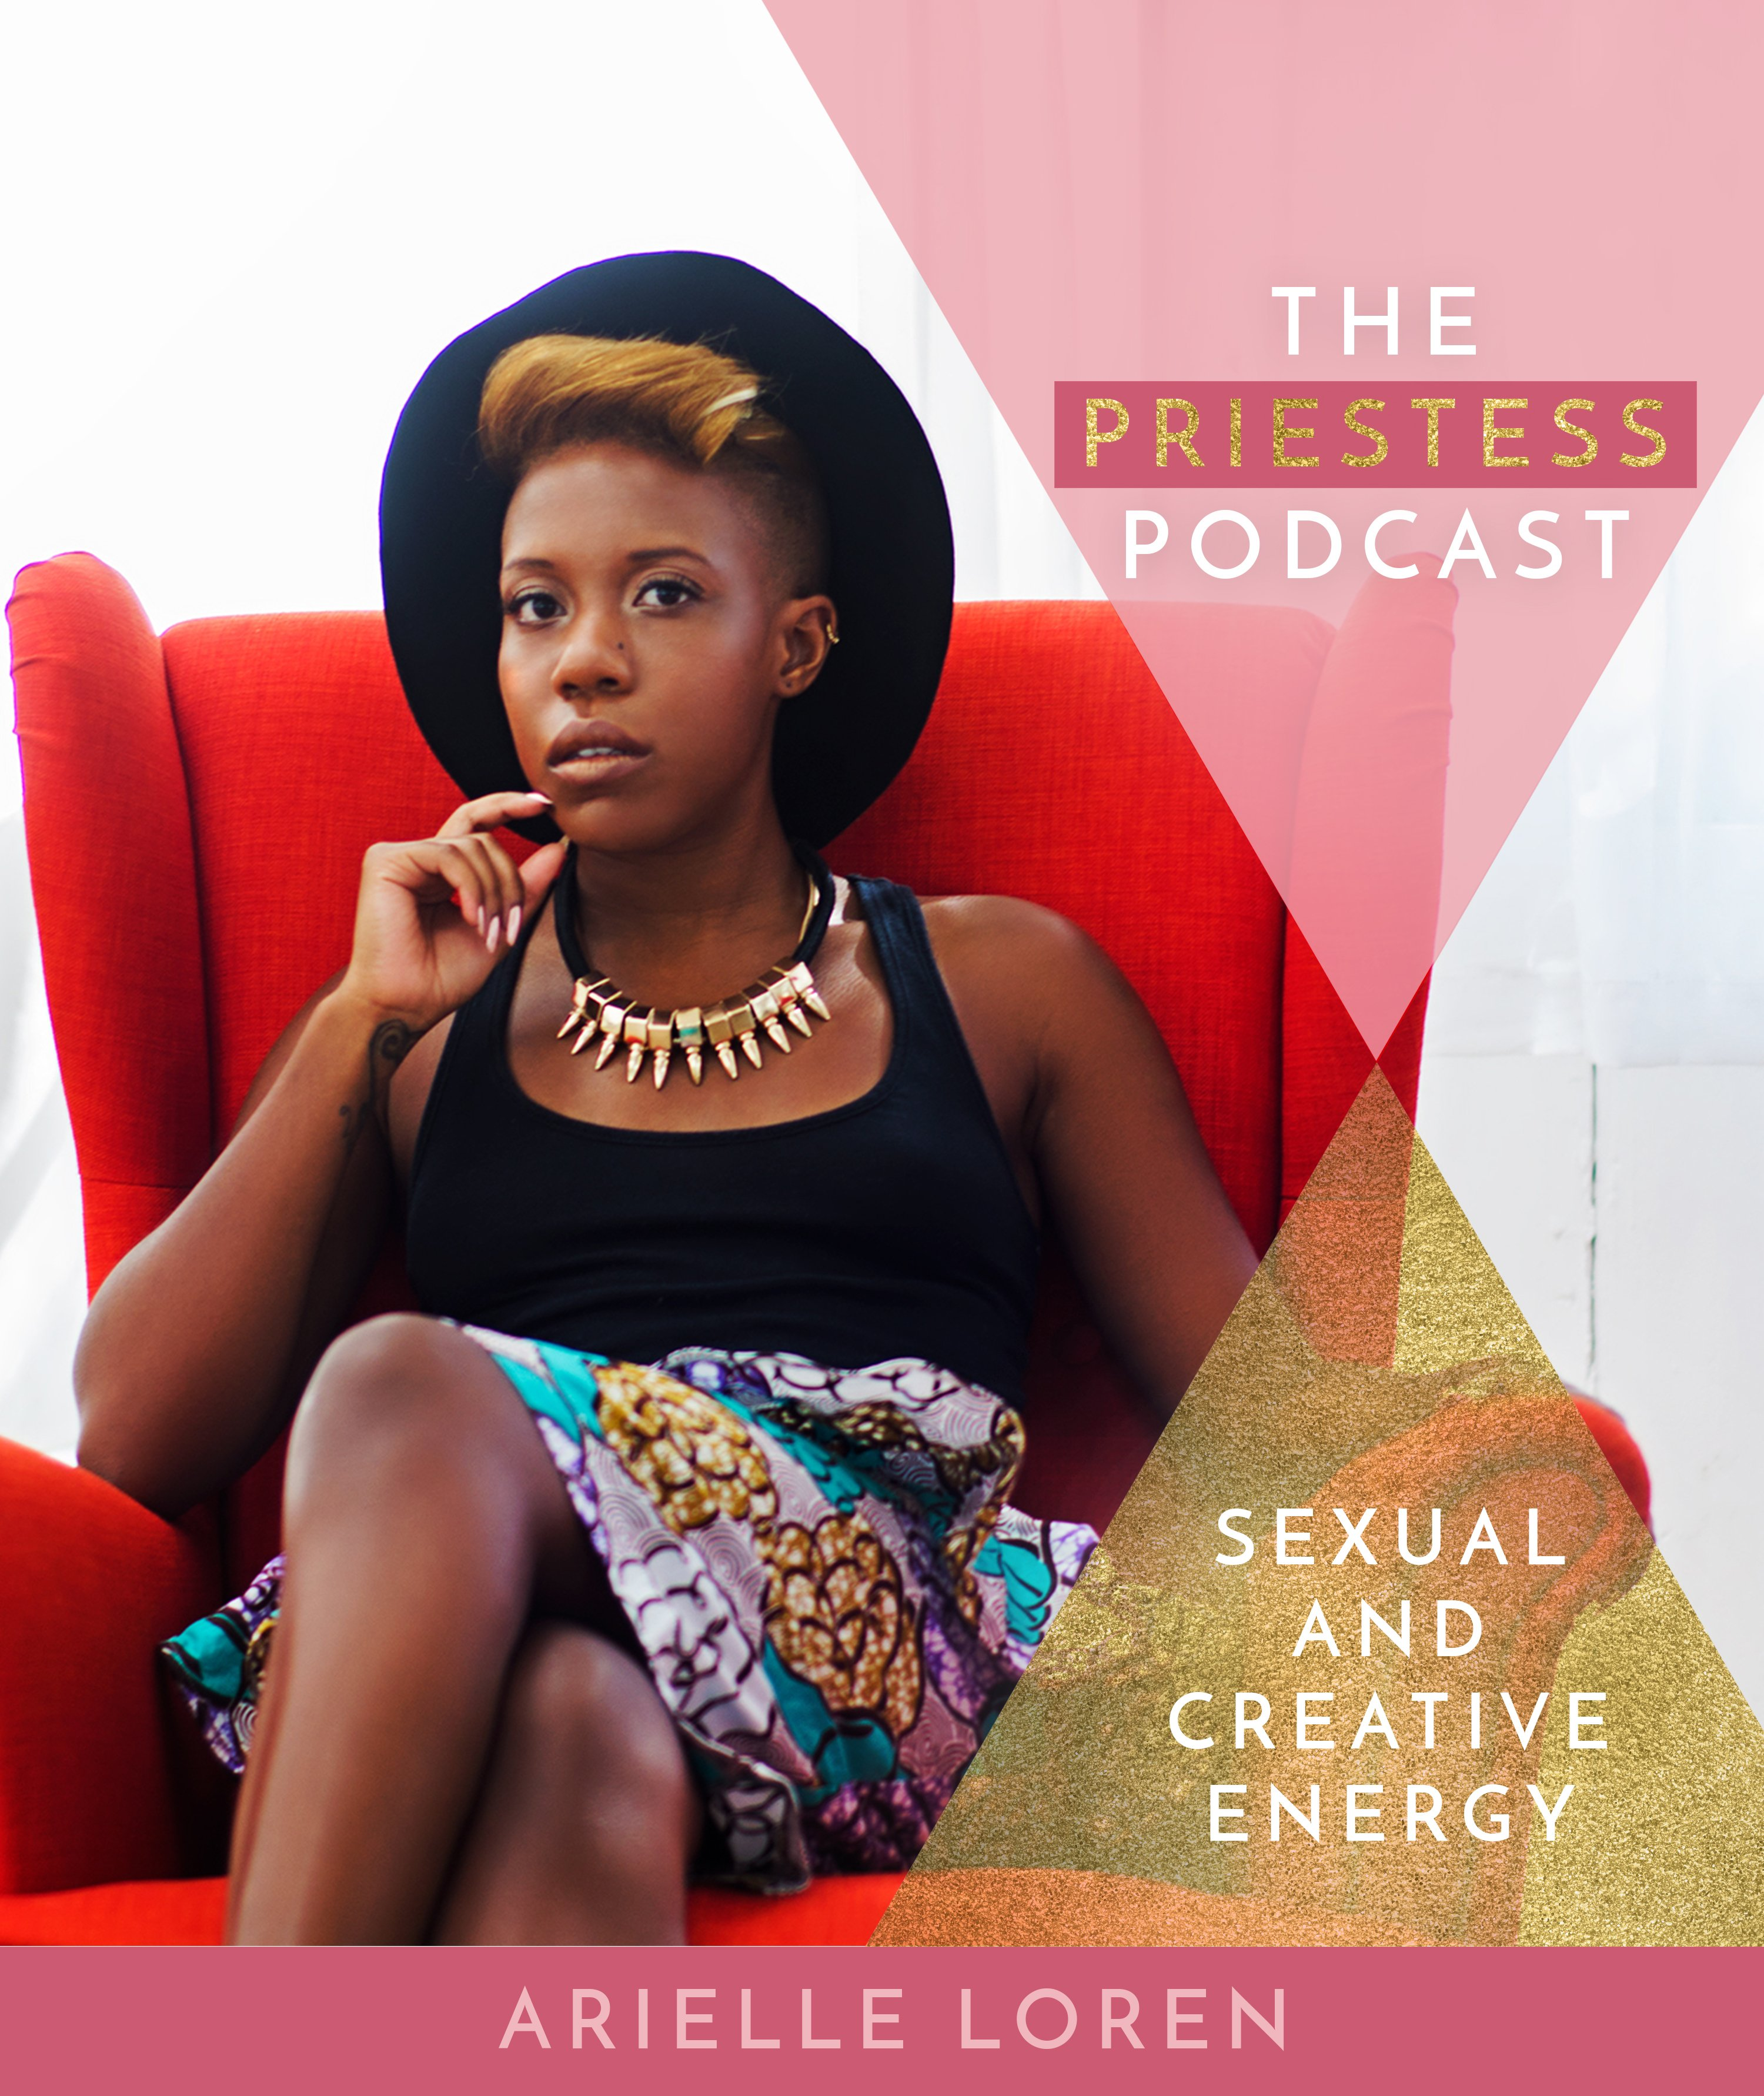 Arielle Loren on Sexual and Creative Energy